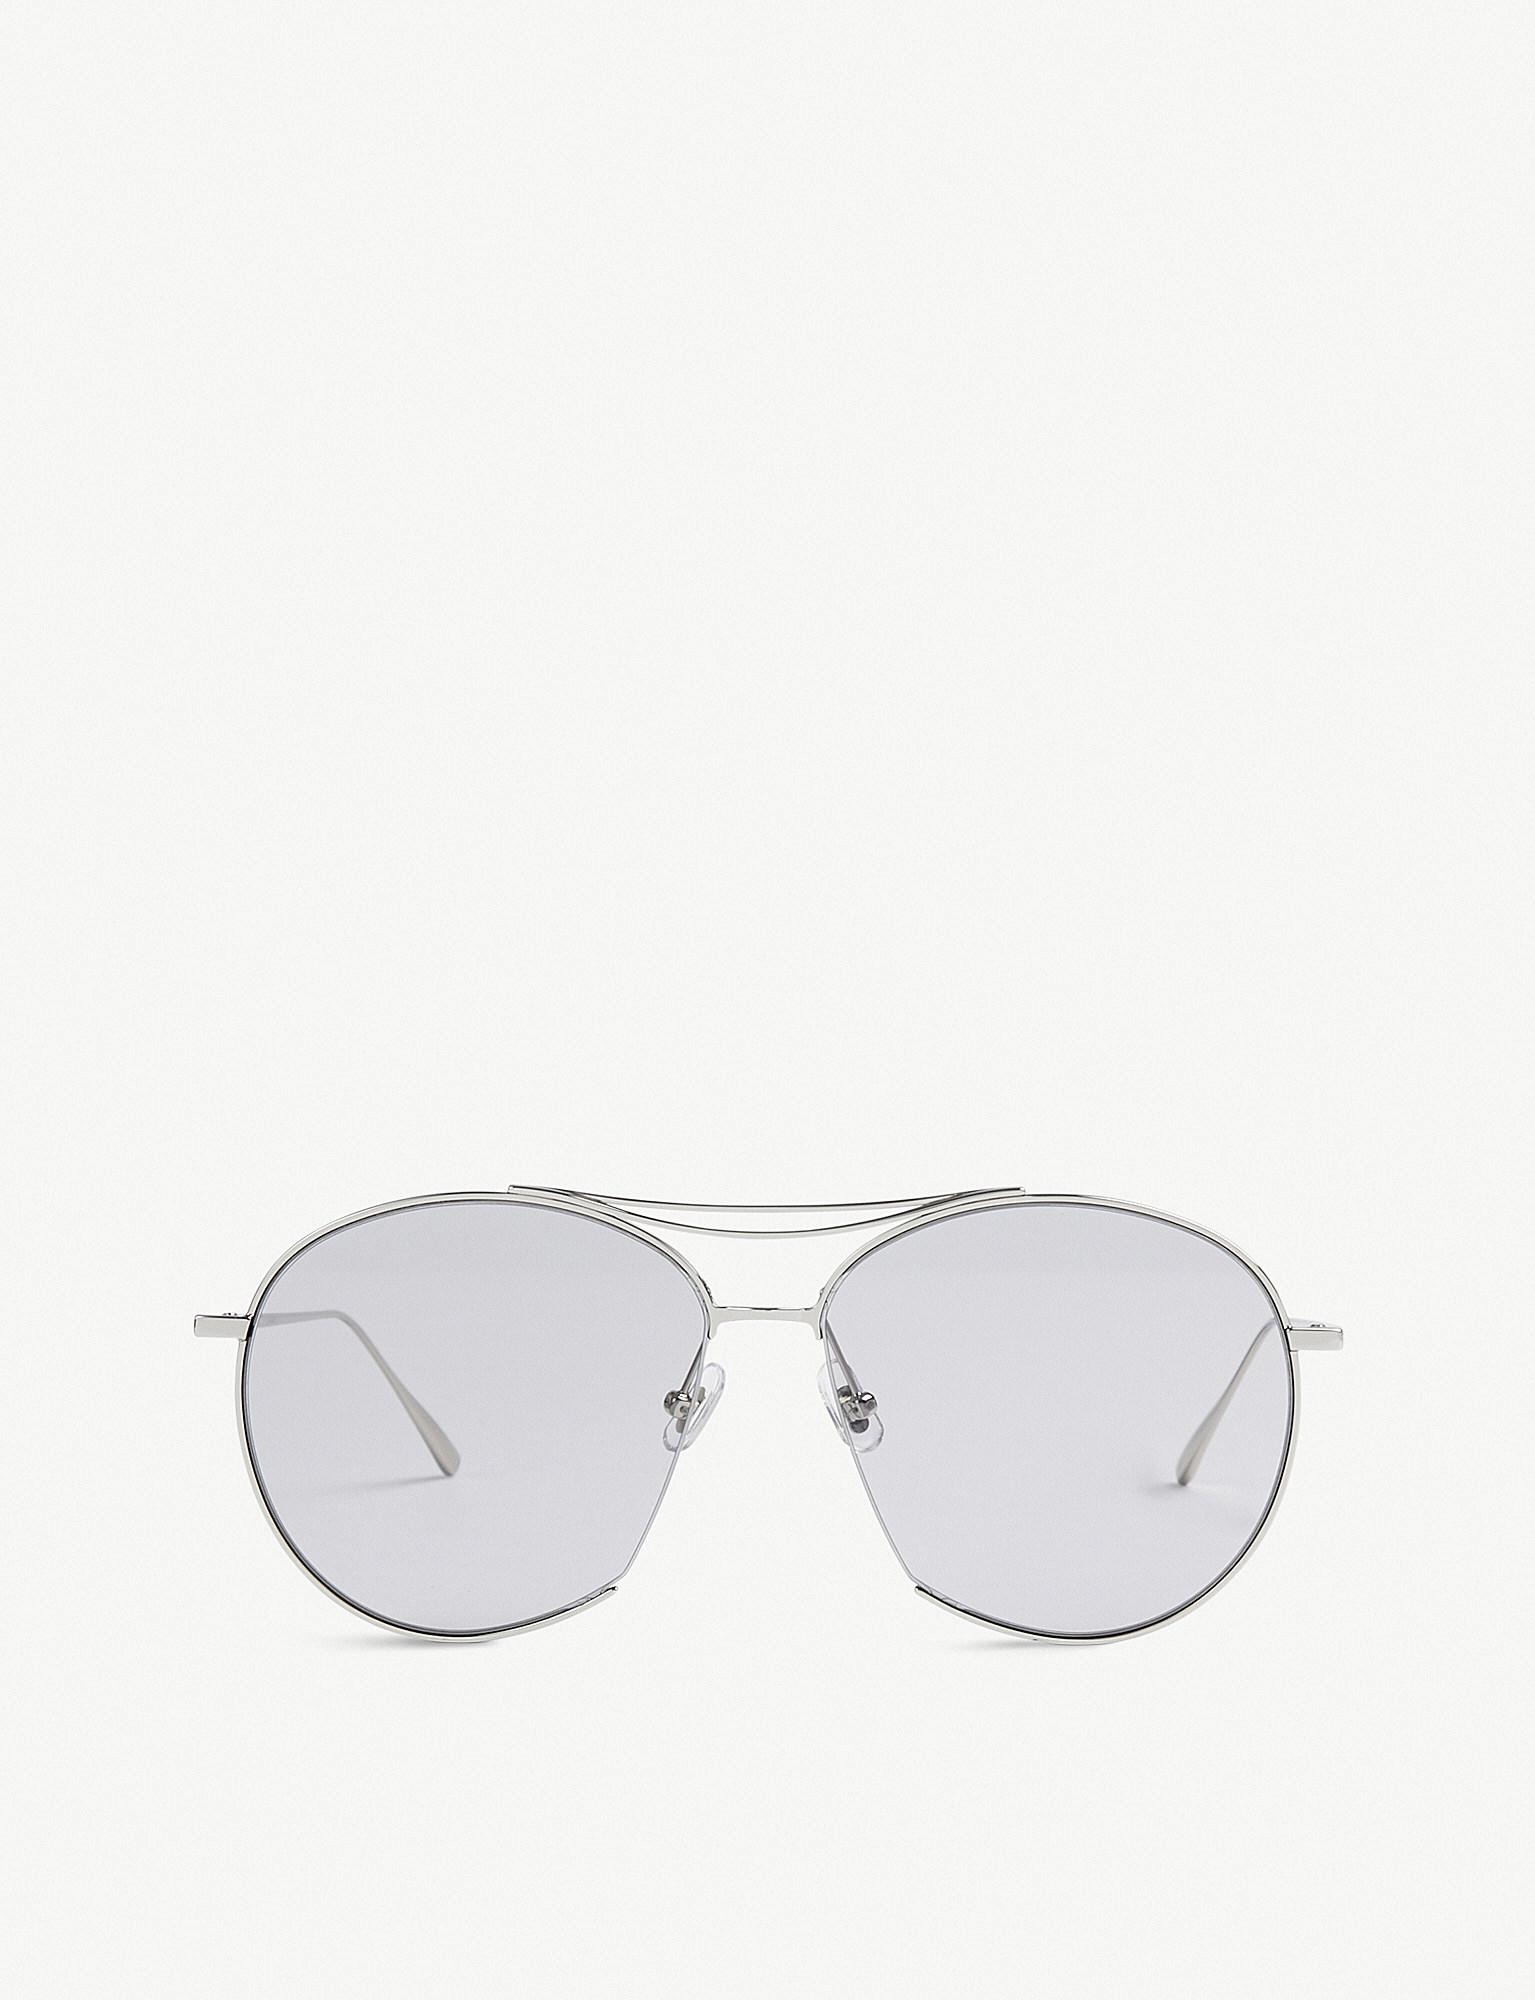 4a3ef28b38a Gentle Monster. Women s Metallic Jumping Jack Tinted Aviator Stainless  Steel Sunglasses